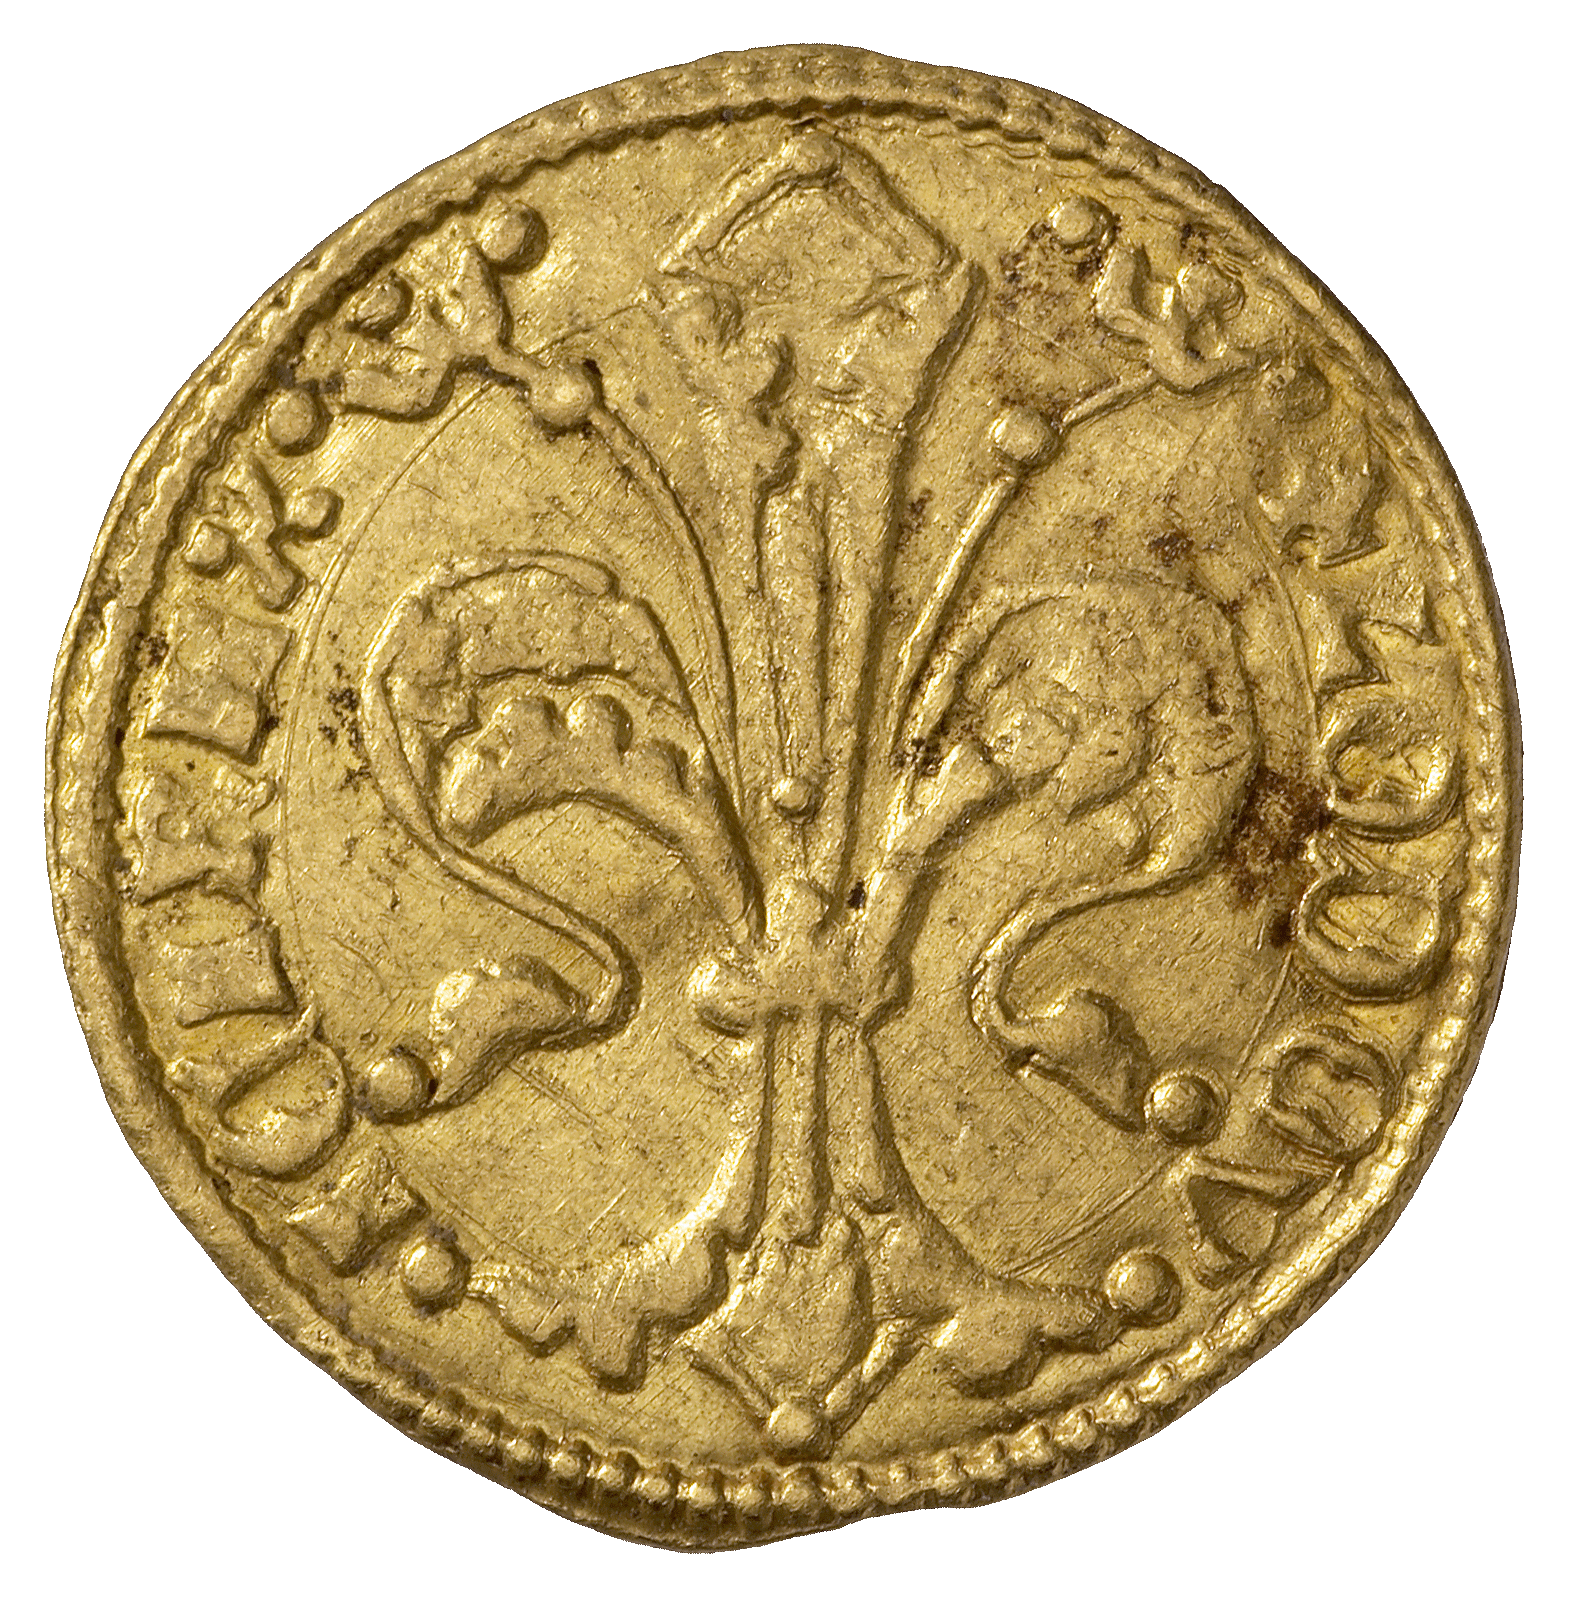 Holy Roman Empire, Kingdom of Hungary, Louis I of Anjou, Goldgulden (obverse)